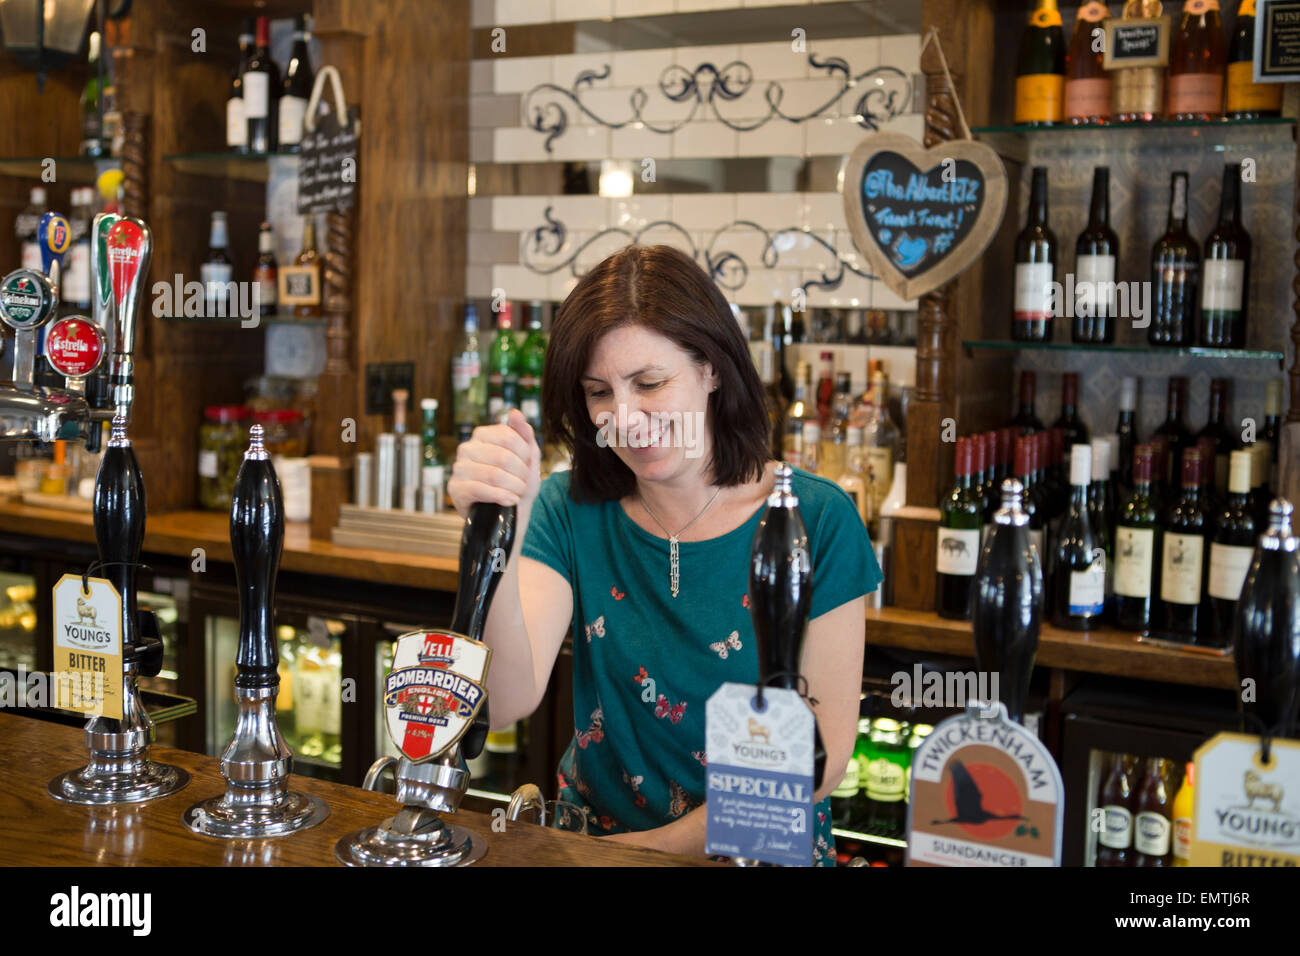 A barmaid pulling a pint in a pub - Stock Image